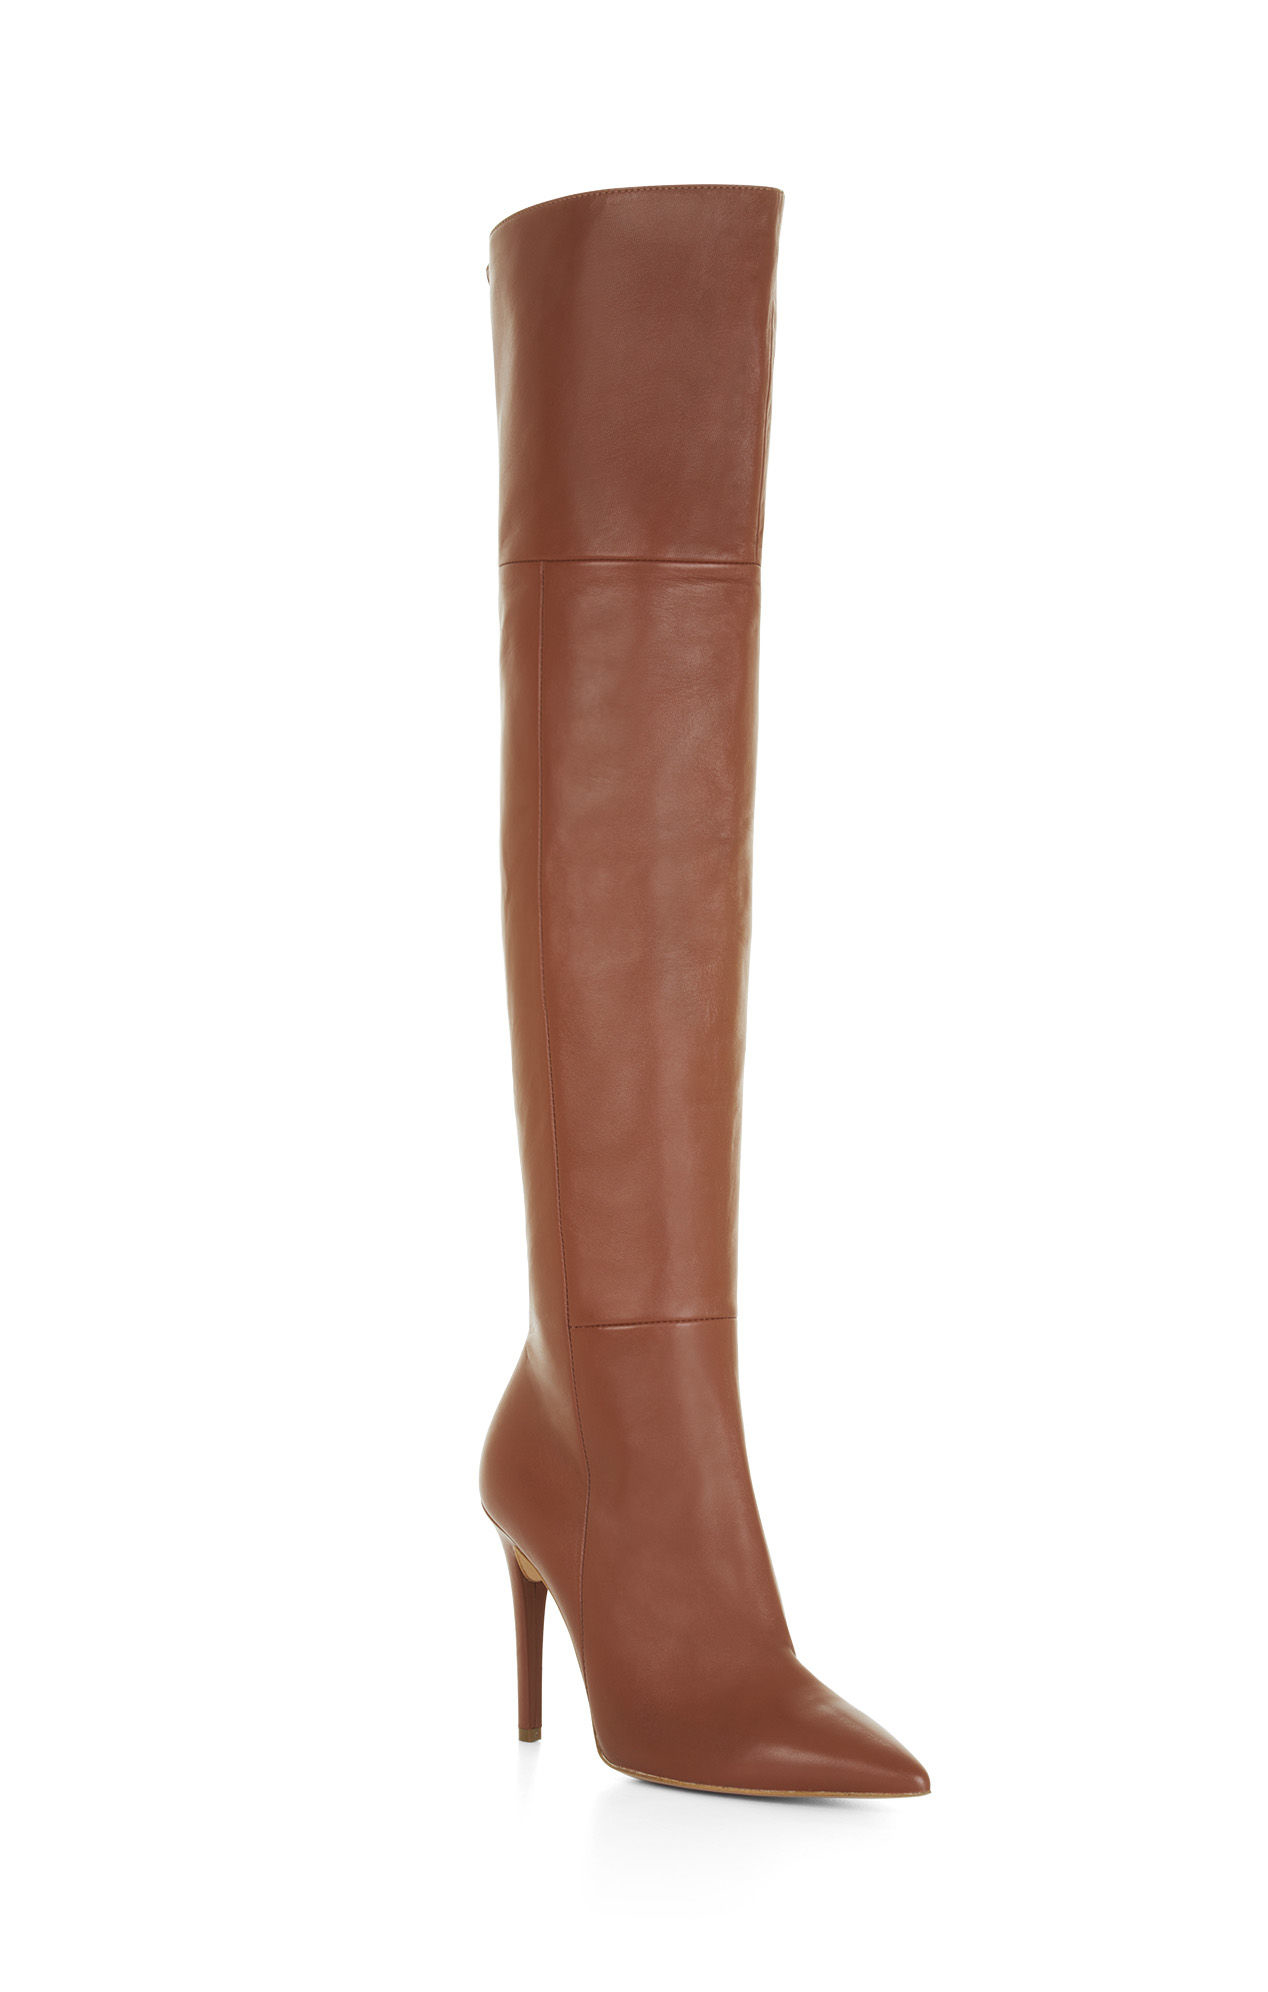 Bcbgmaxazria Abella High-heel Over-the-knee Leather Boots in Brown ...